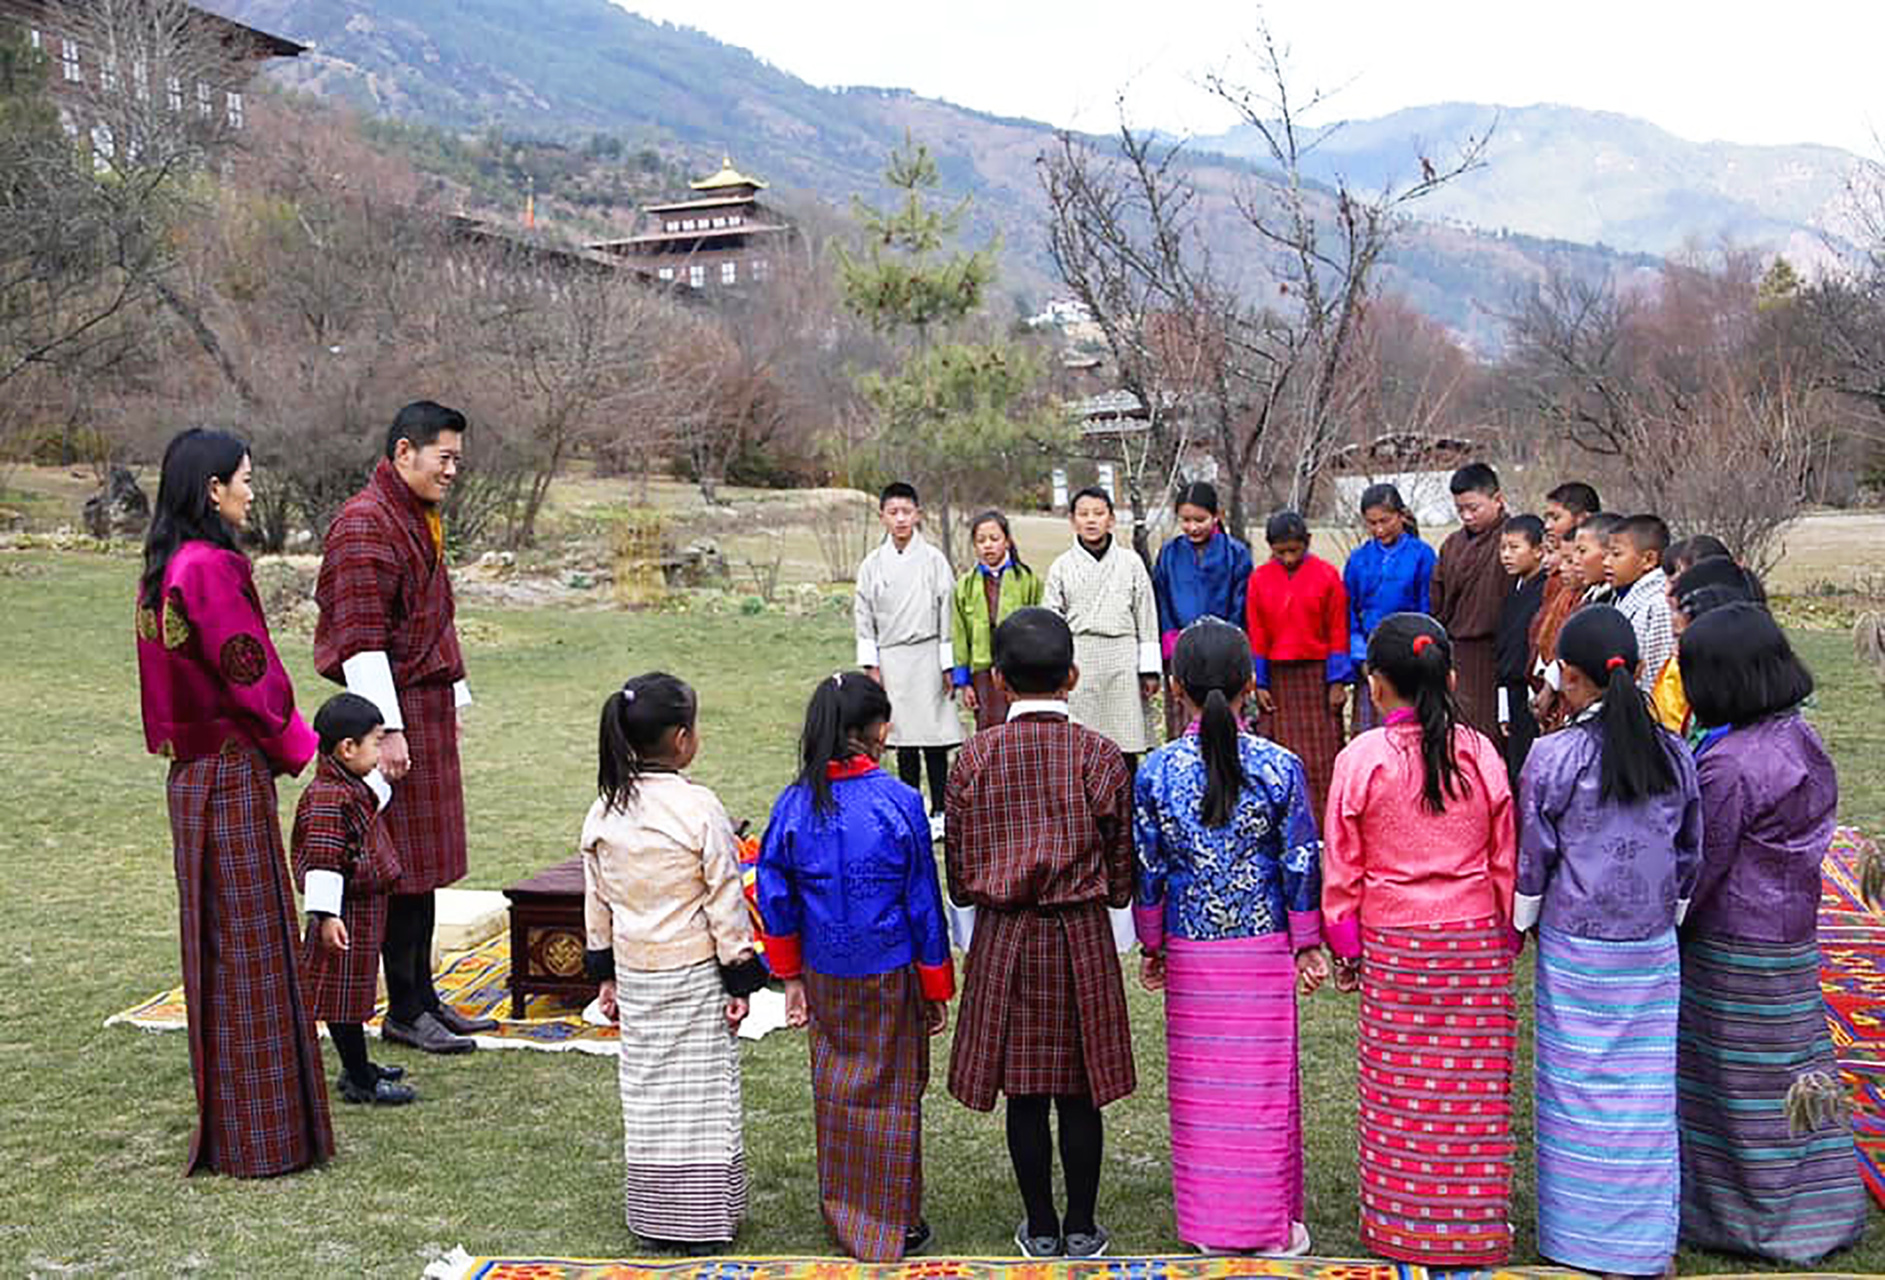 dynasty family outdoor holiday festivities Bhutan